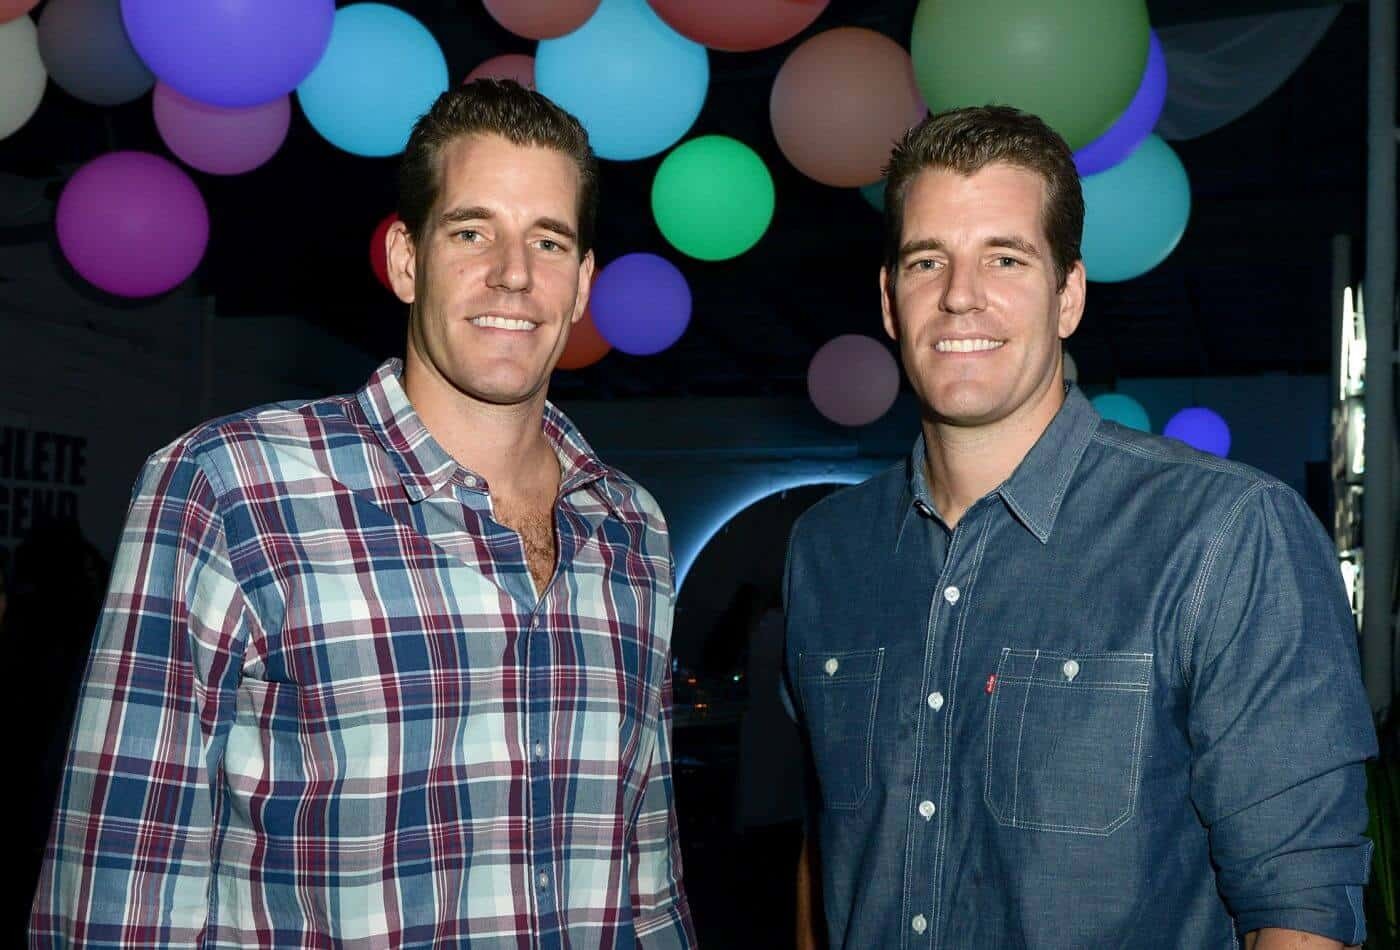 Winklevoss Twins Advice Zuckerberg to Work with Regulators